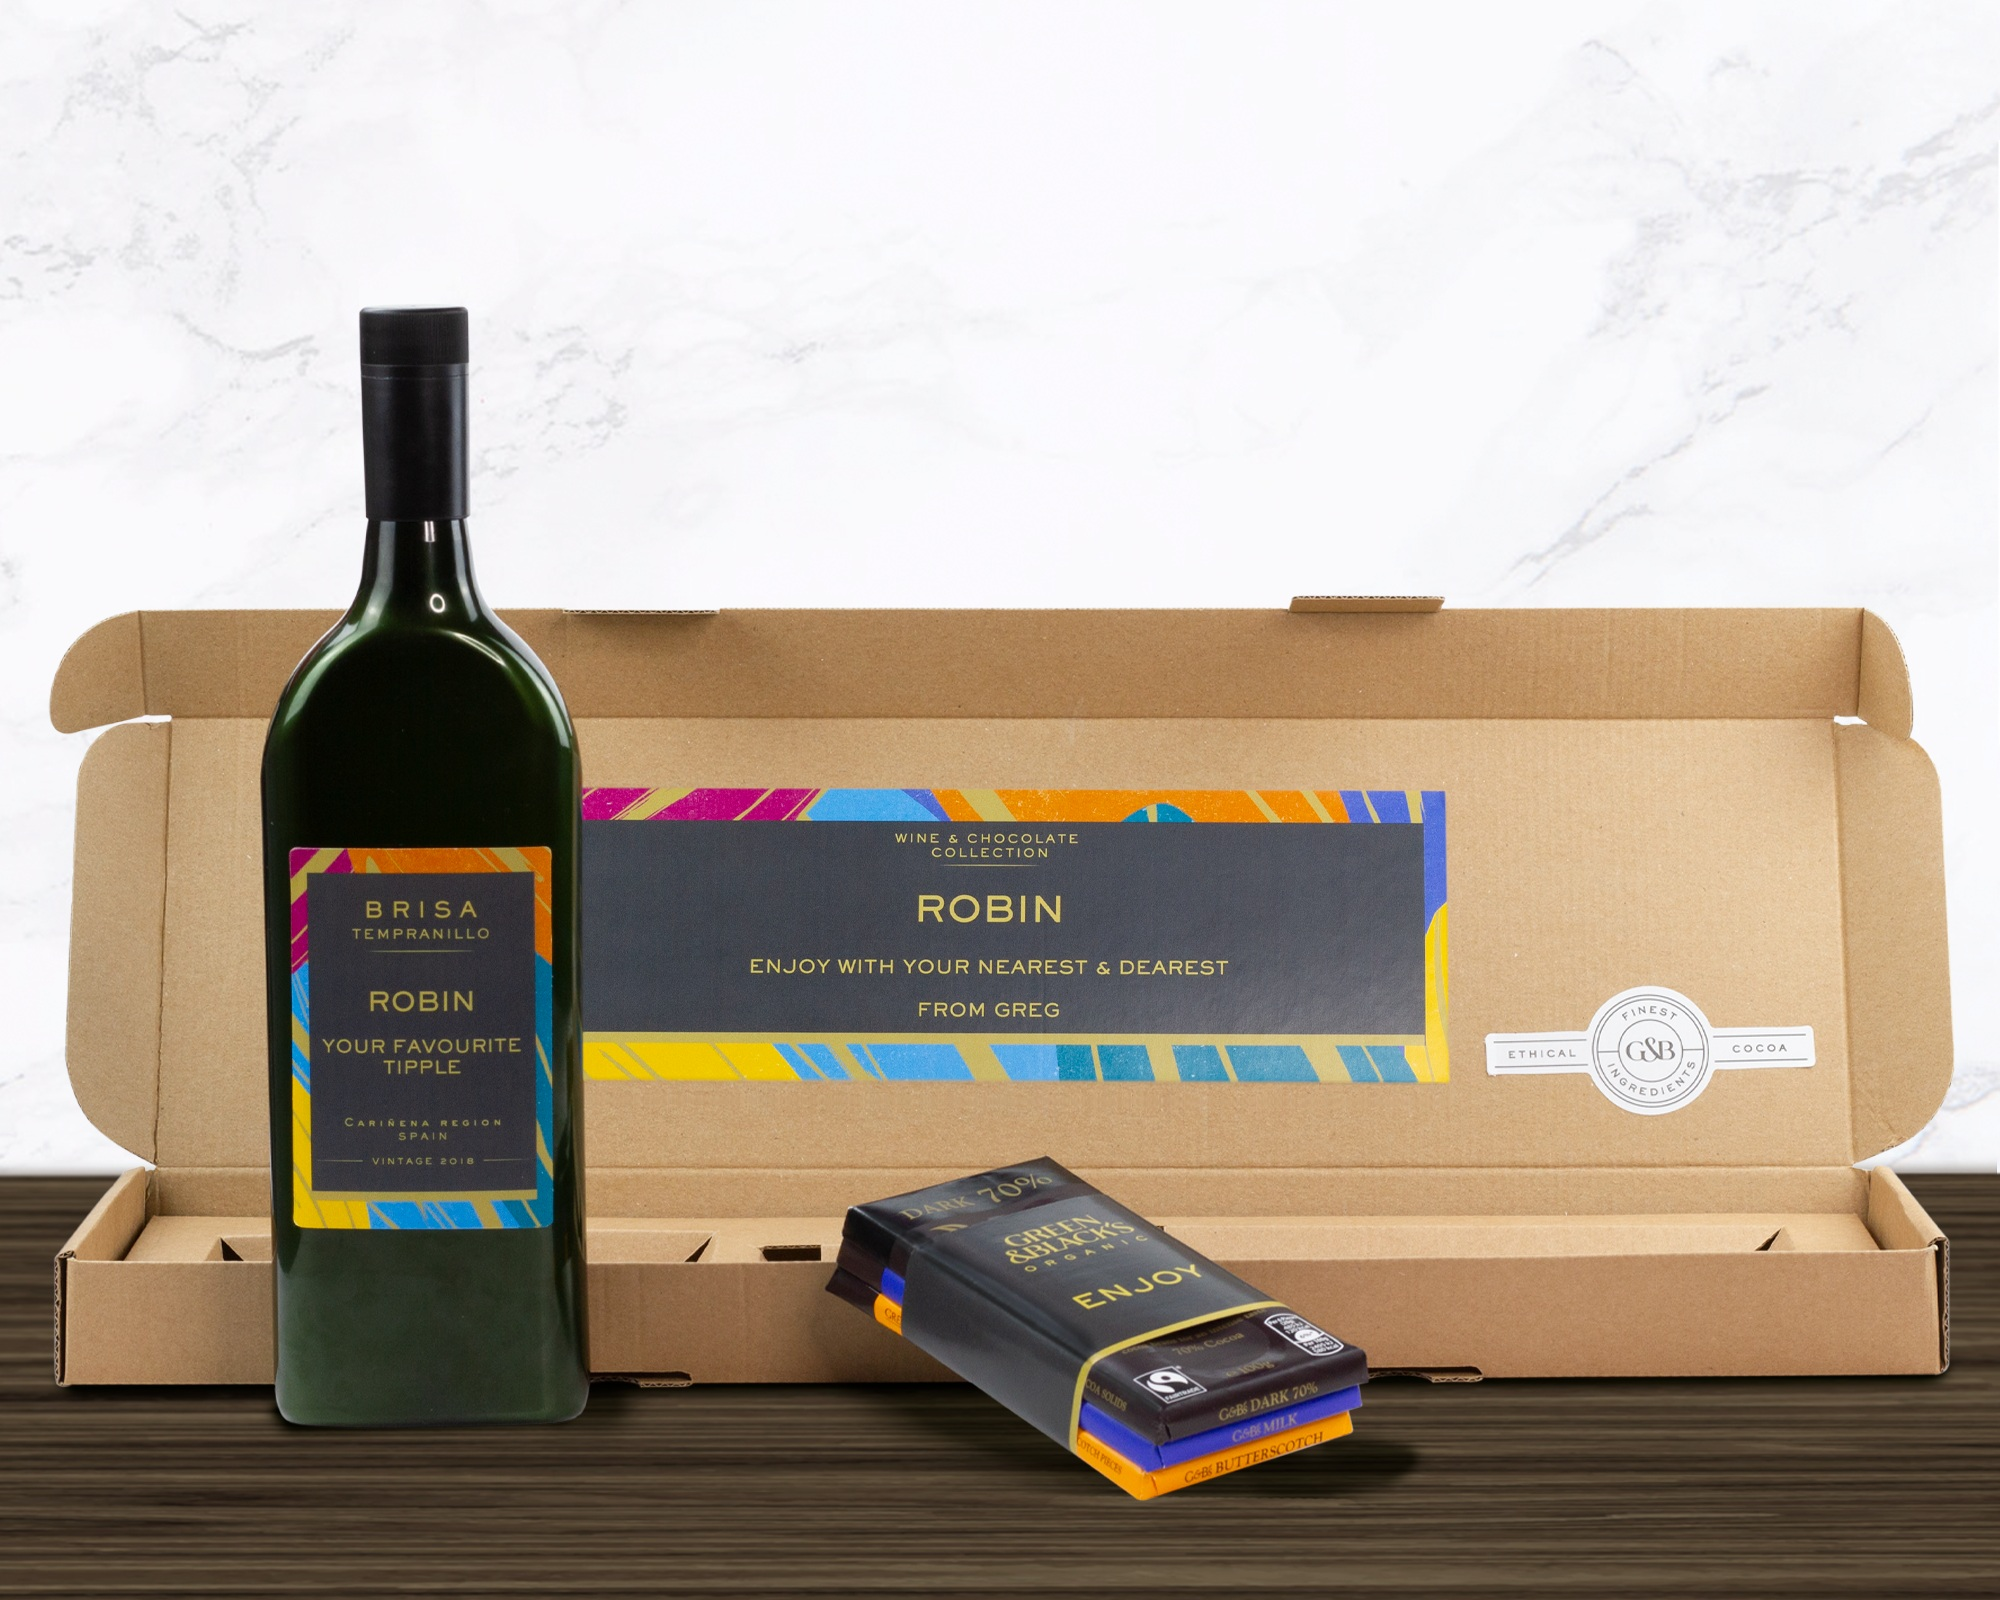 The Wine & Chocolate Collection - Create indulgent moments in the home with the next generation of personalised gifting, featuring Brisa Tempranillo Letterbox Wine® and Green & Black's Milk, Butterscotch and 70% Dark luxury chocolate bars.